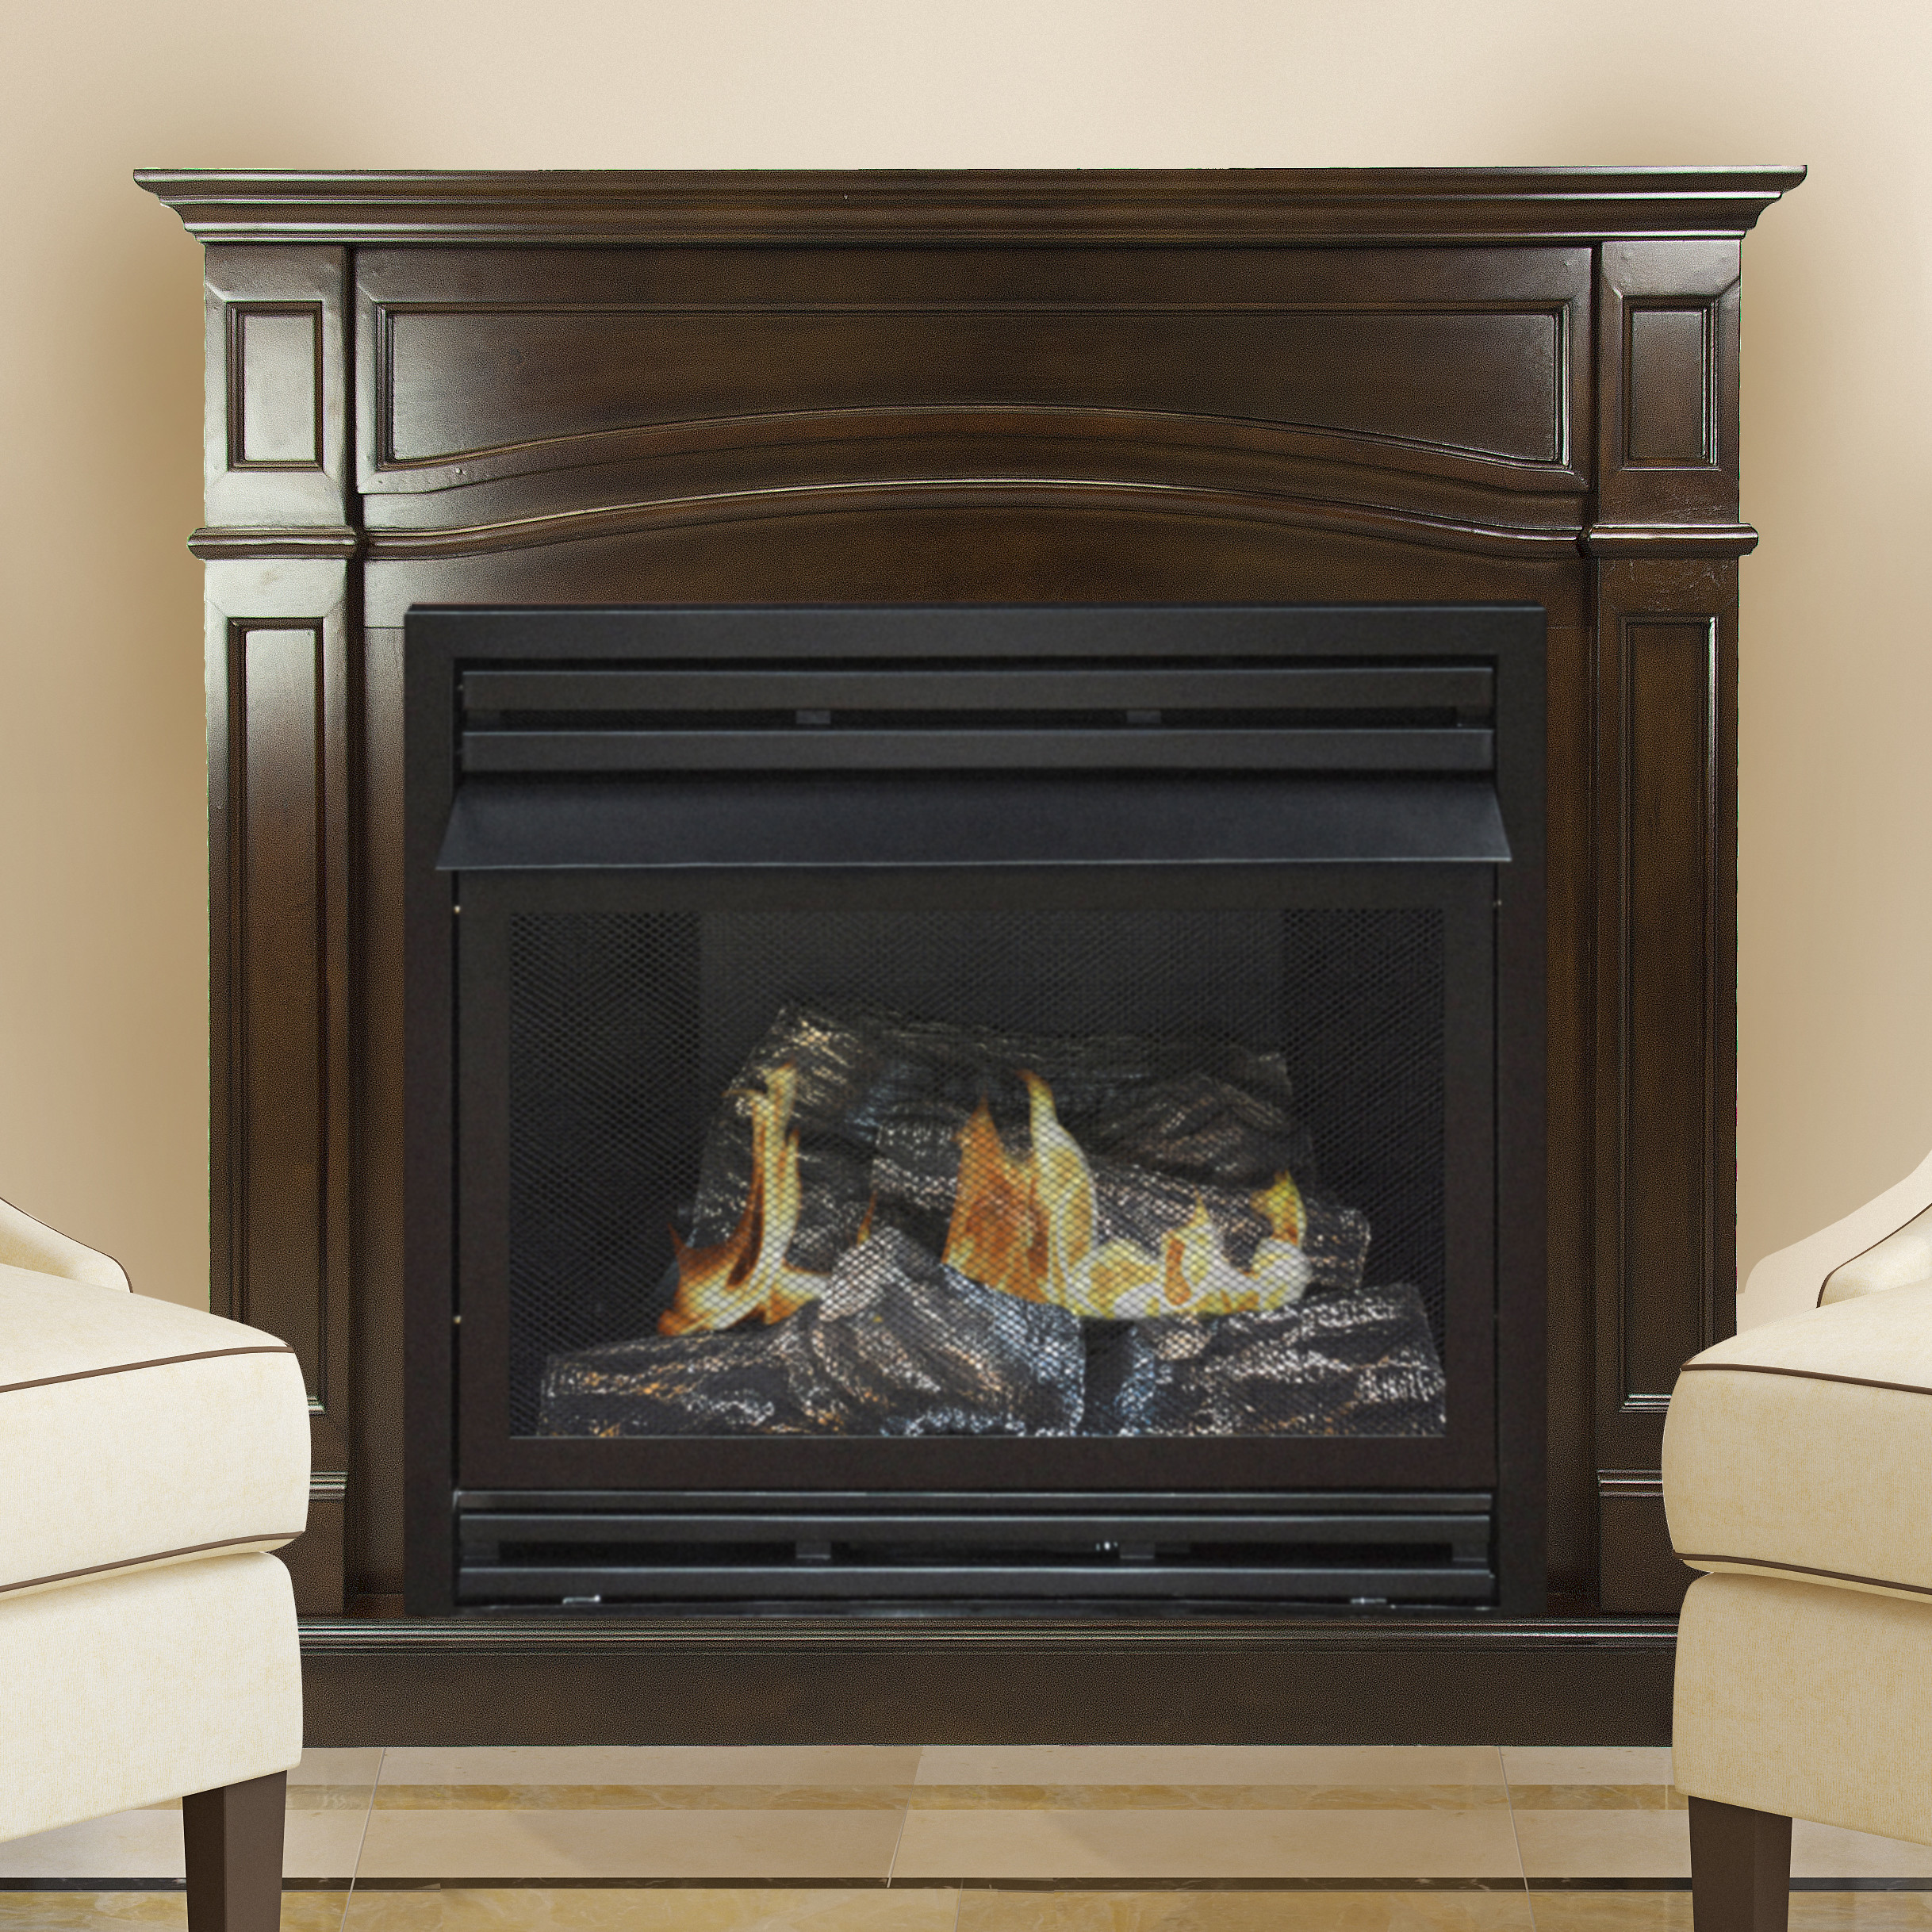 Mendota Fireplace Price List Unique Pleasant Hearth 46 In Natural Gas Full Size Cherry Vent Free Fireplace System 32 000 Btu